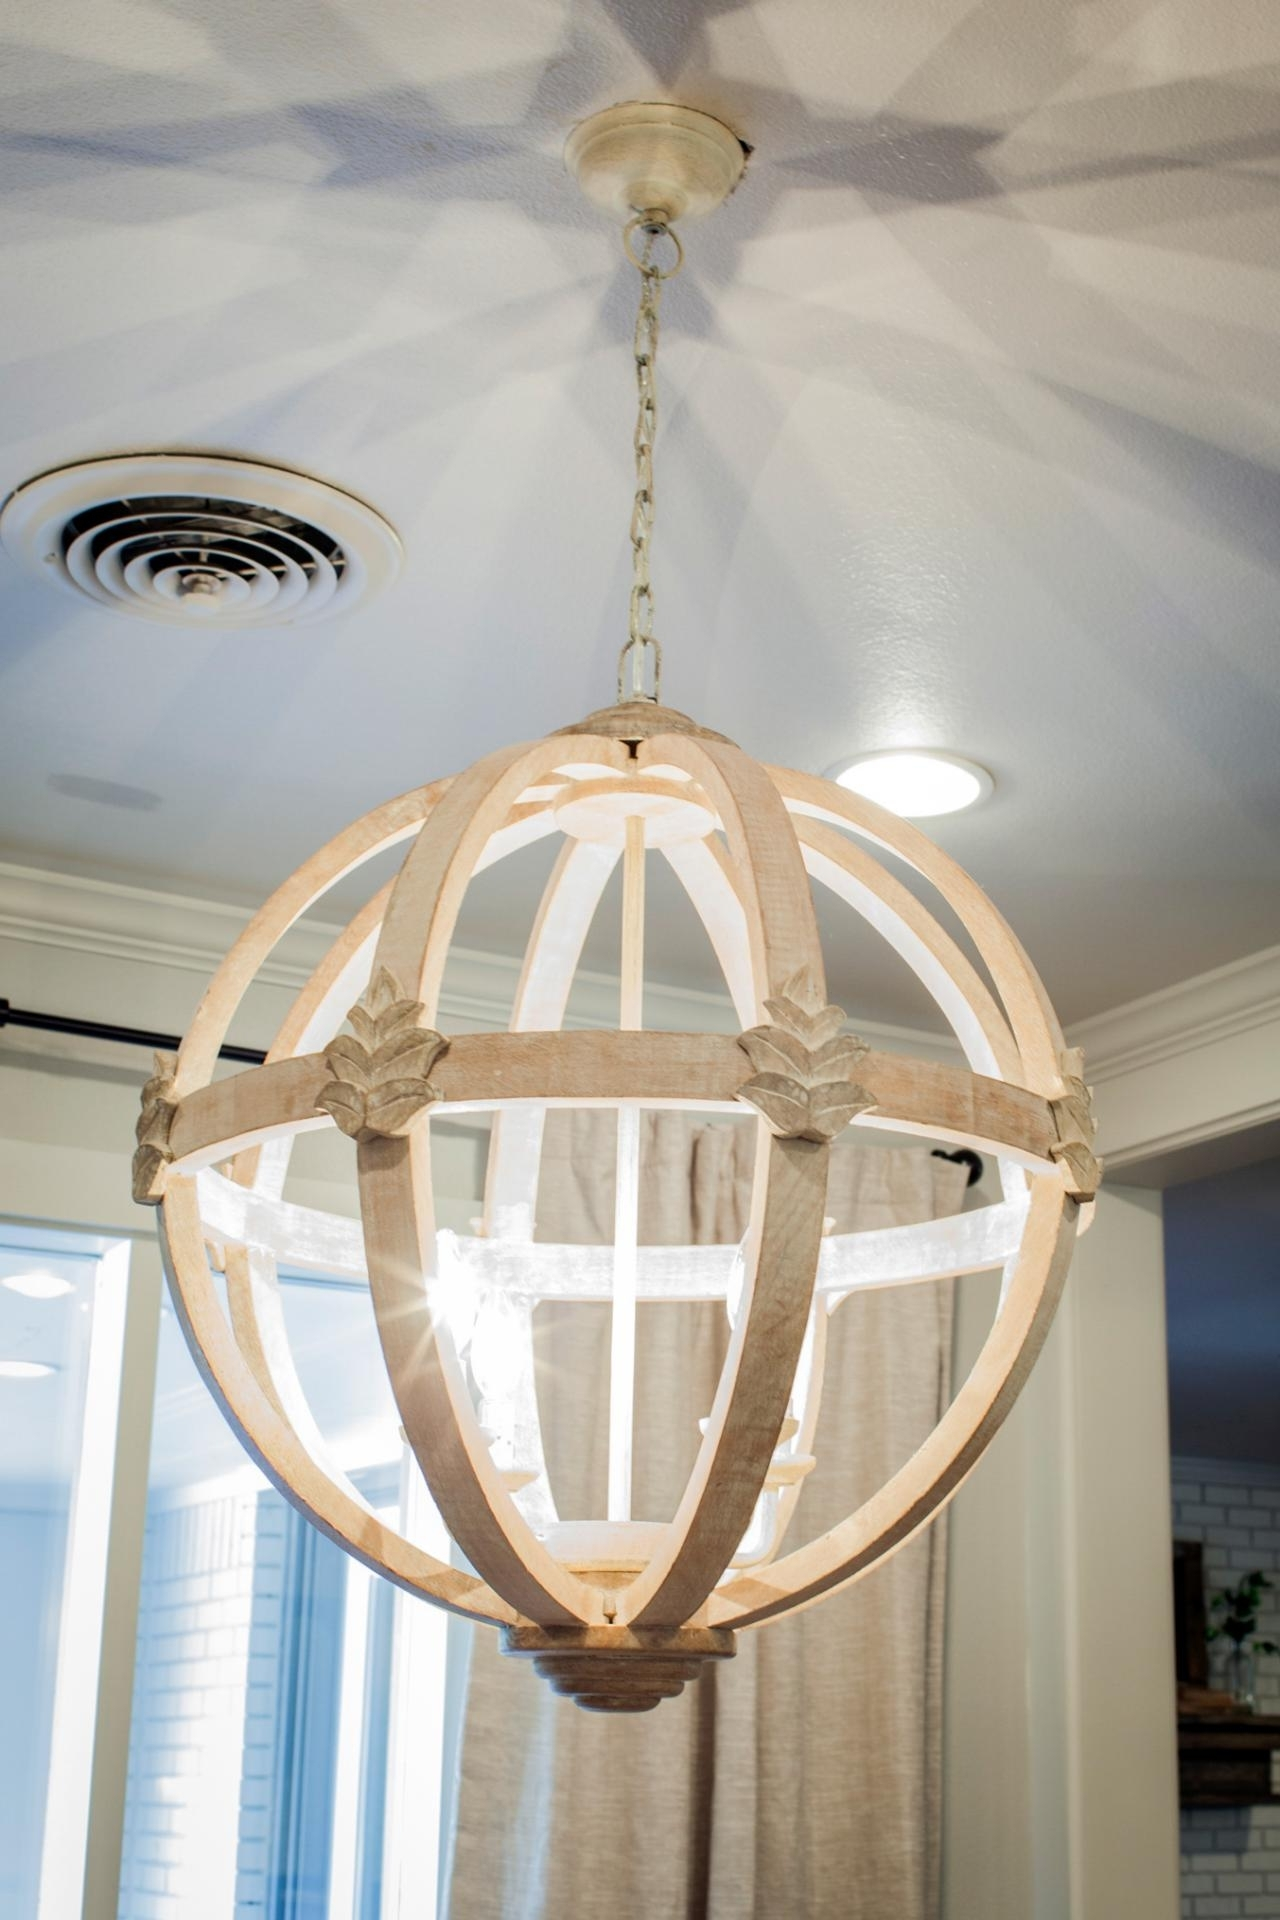 Wooden Chandeliers Regarding 2019 Lighting: Sophisticated Wooden Chandeliers For Home Accessories (View 20 of 20)